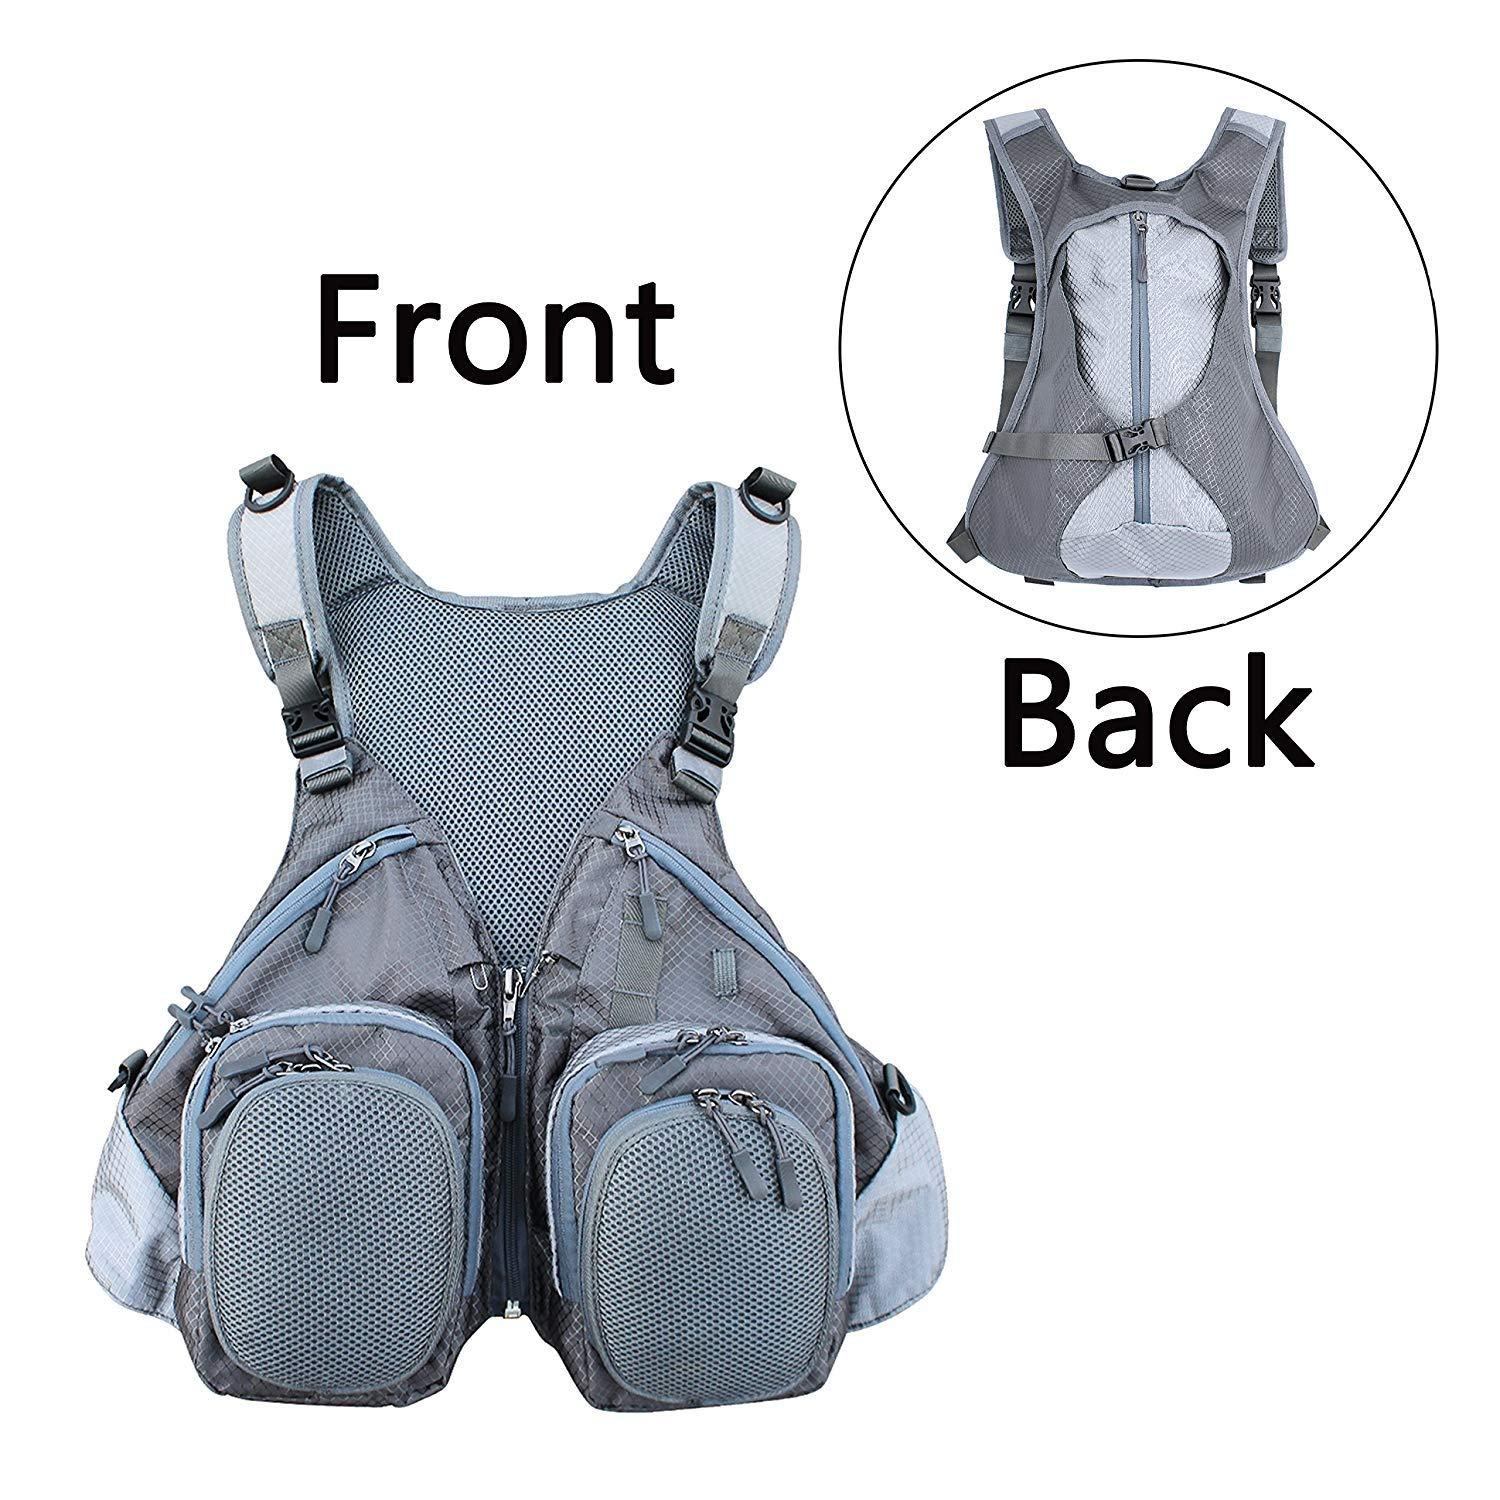 Fly Fishing Backpack & Vest Combo Fly Fishing Vest Pack Fishing Sling Pack With Hard Shell Storage for Tackle Gear and Accessories (Gray)